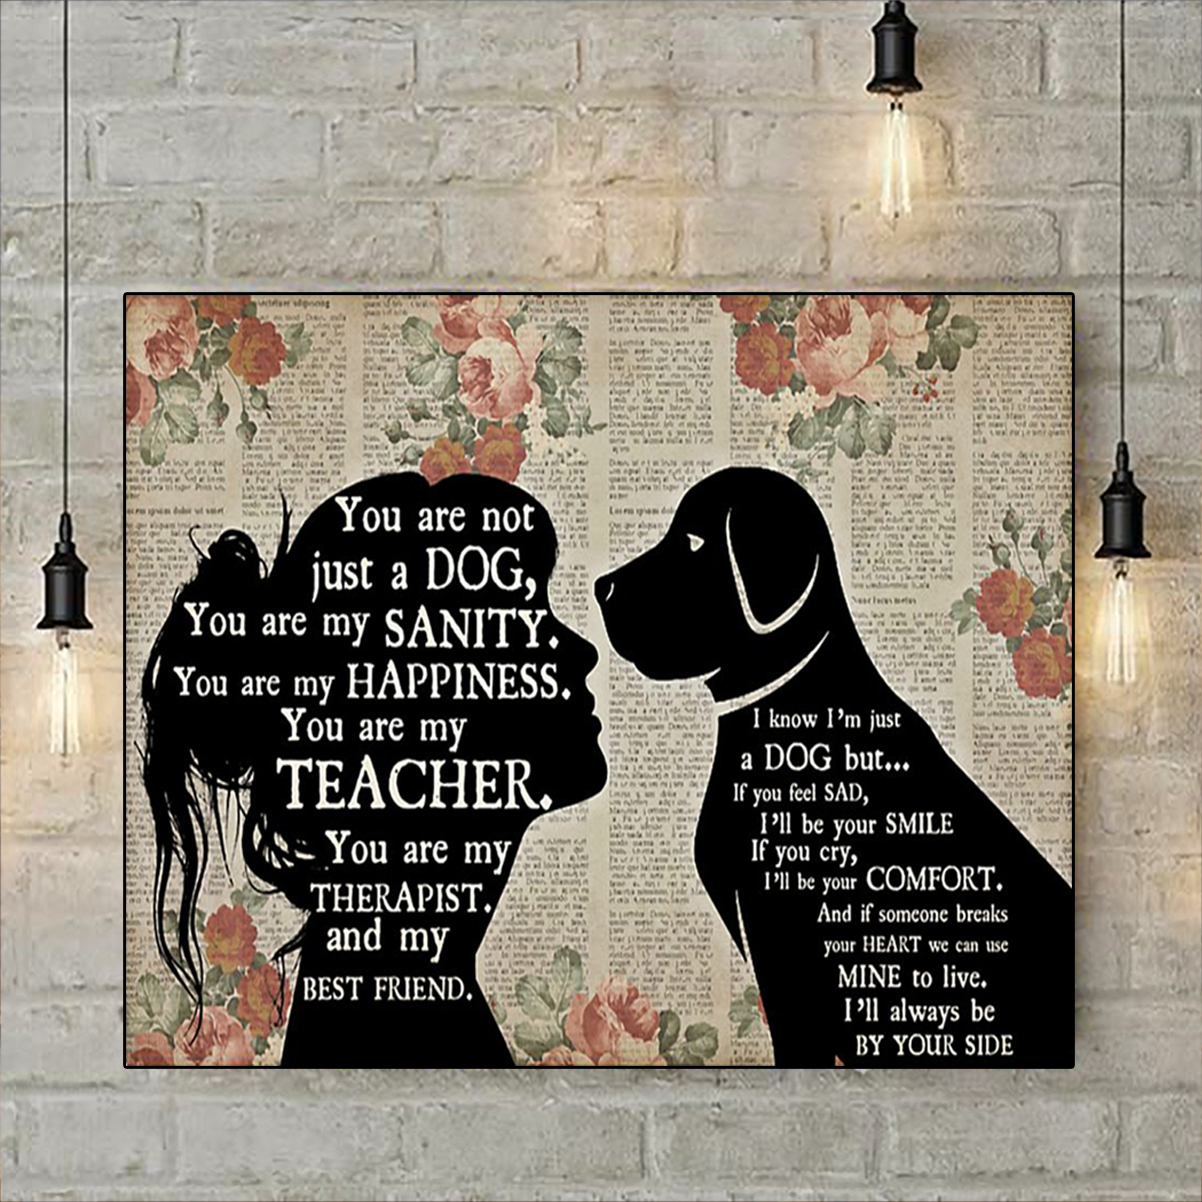 Girl and dog therapist you are not just a dog poster A3